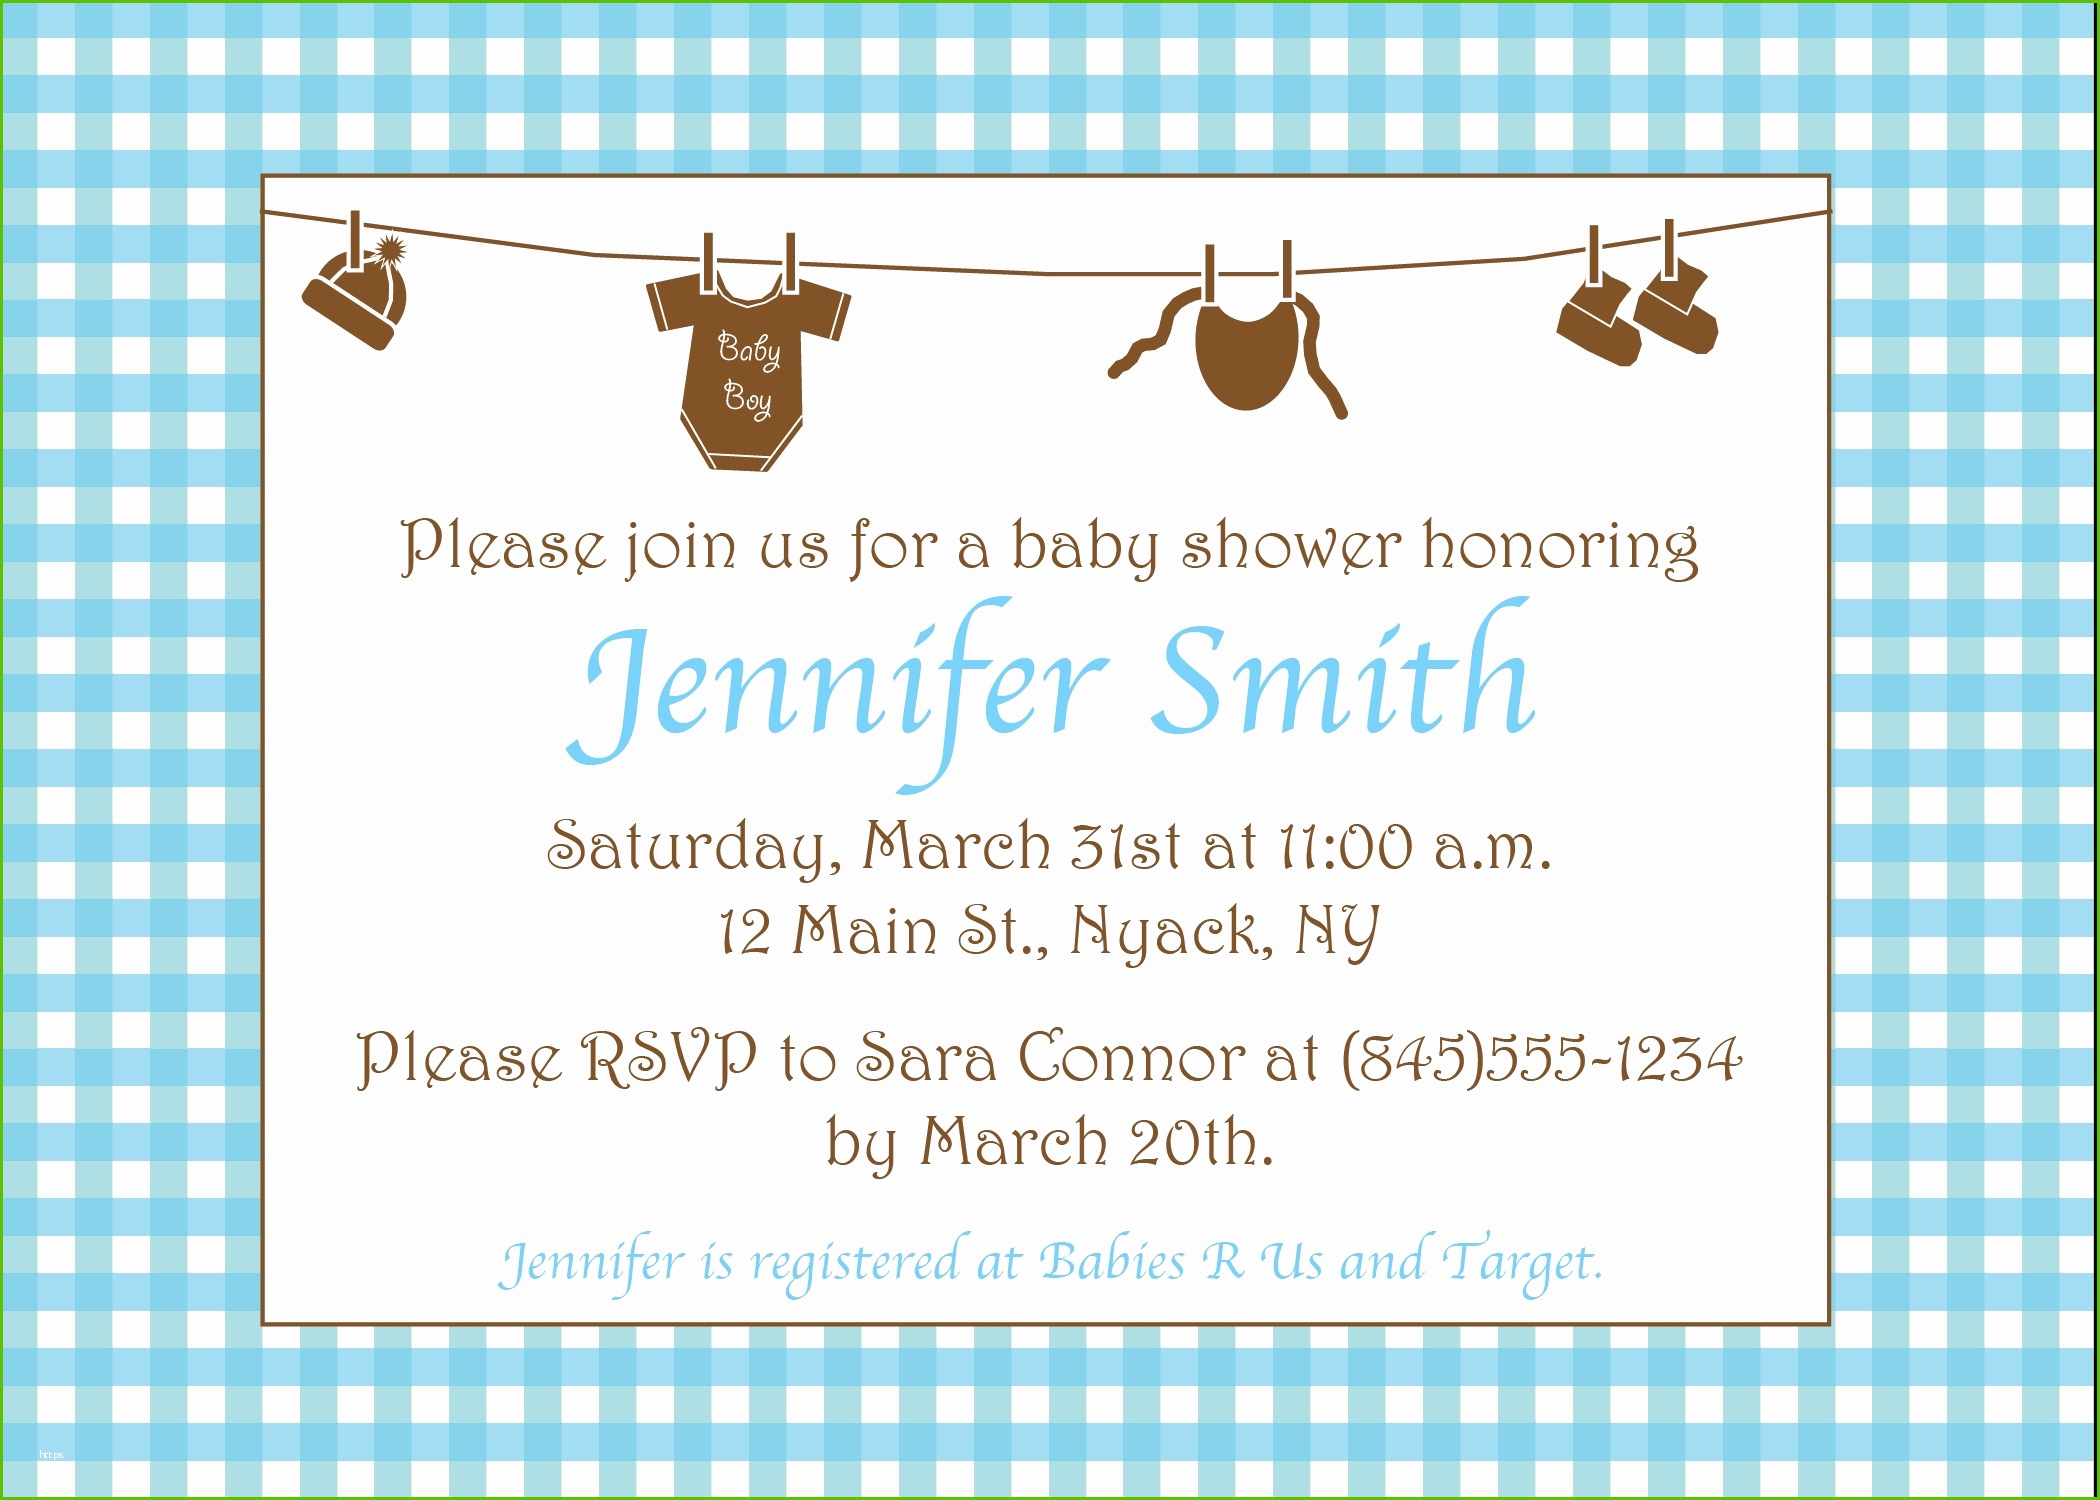 Full Size of Baby Shower:delightful Baby Shower Invitation Wording Picture Designs Baby Shower Invitation Wording Baby Shower Invitation Wording Examples Beautiful Example Baby Shower Invitation